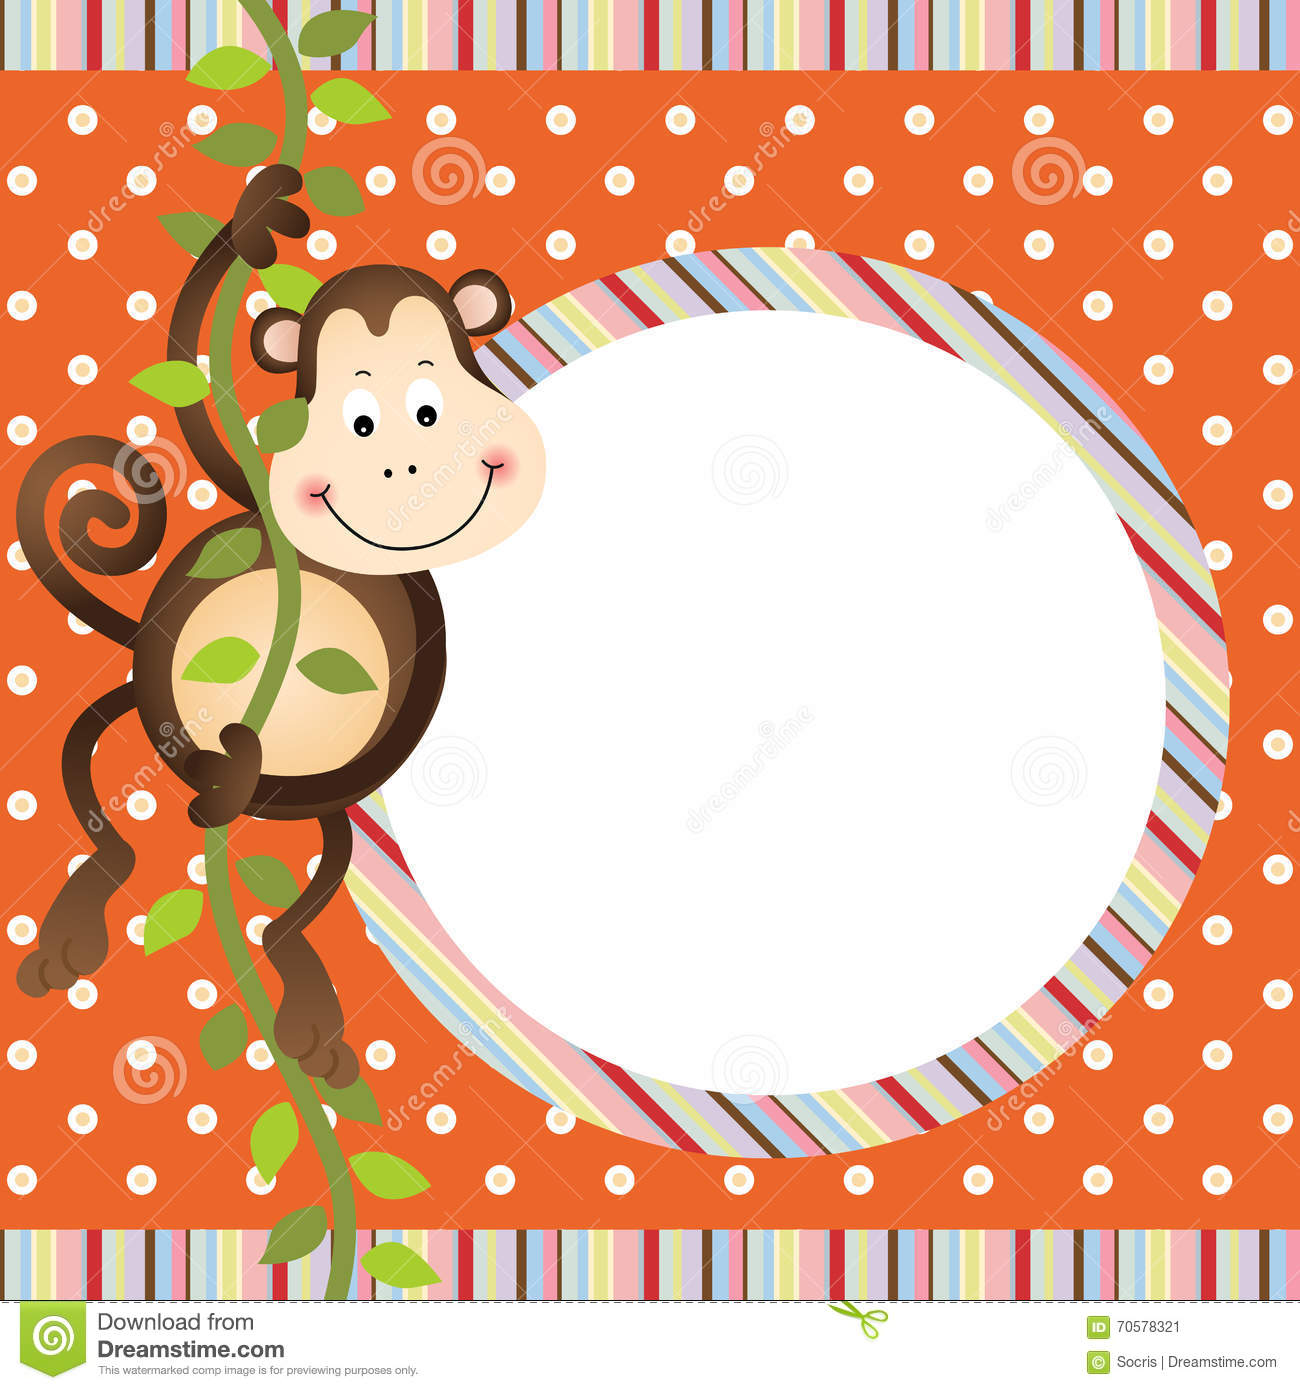 monkey hanging in tree frame background - Monkey Picture Frame